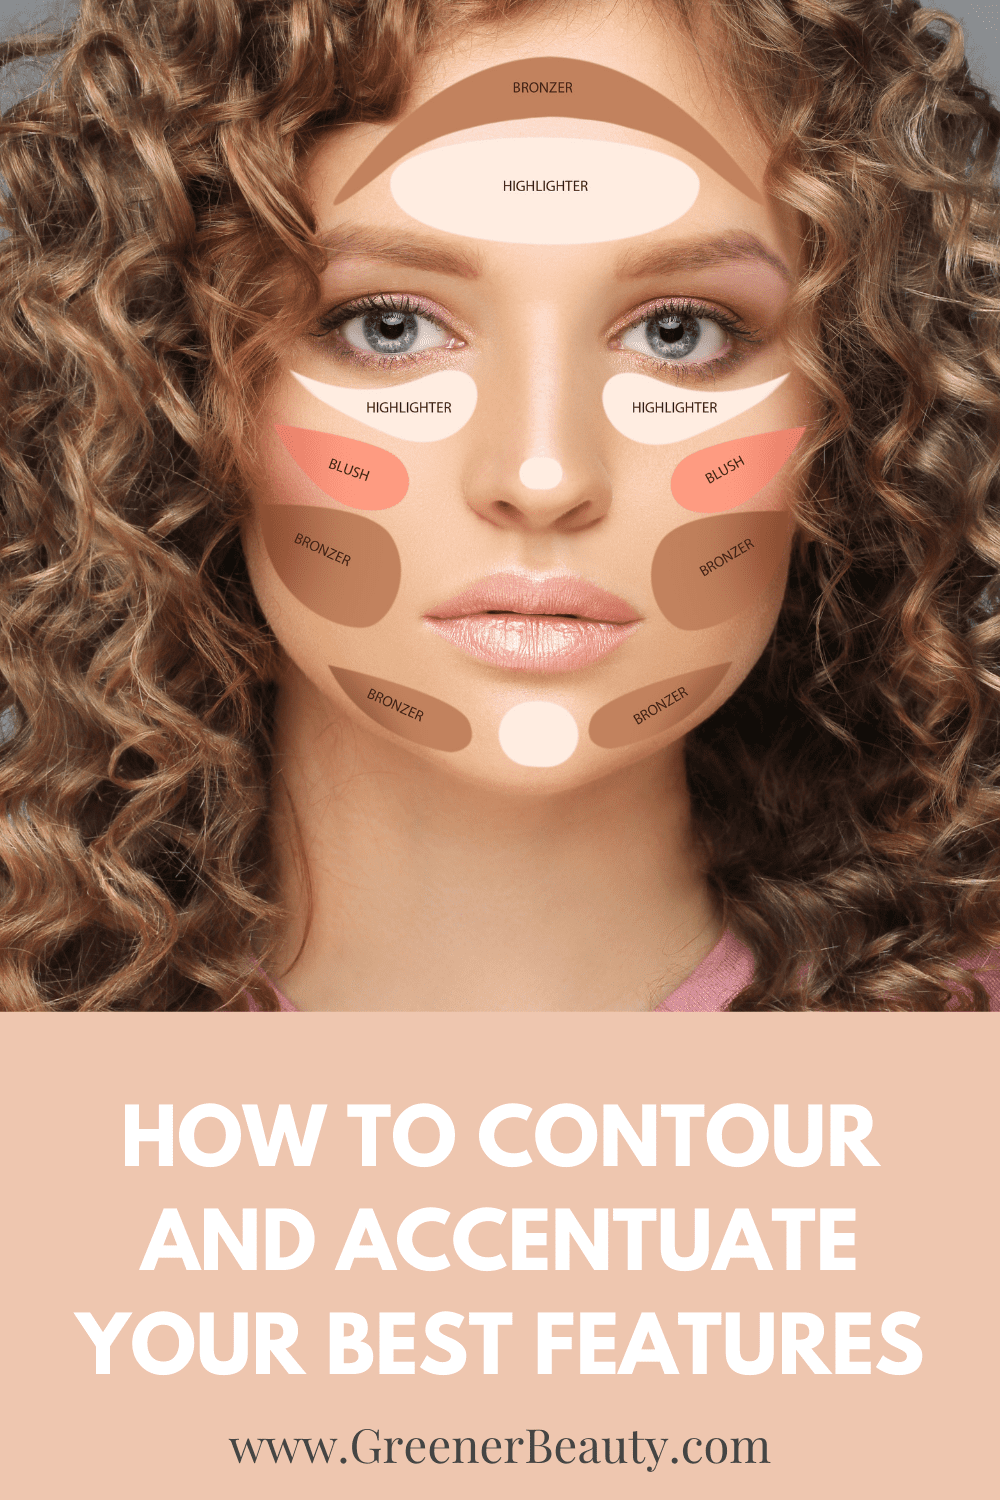 Pinterest Share of Contouring and accentuating your best features.